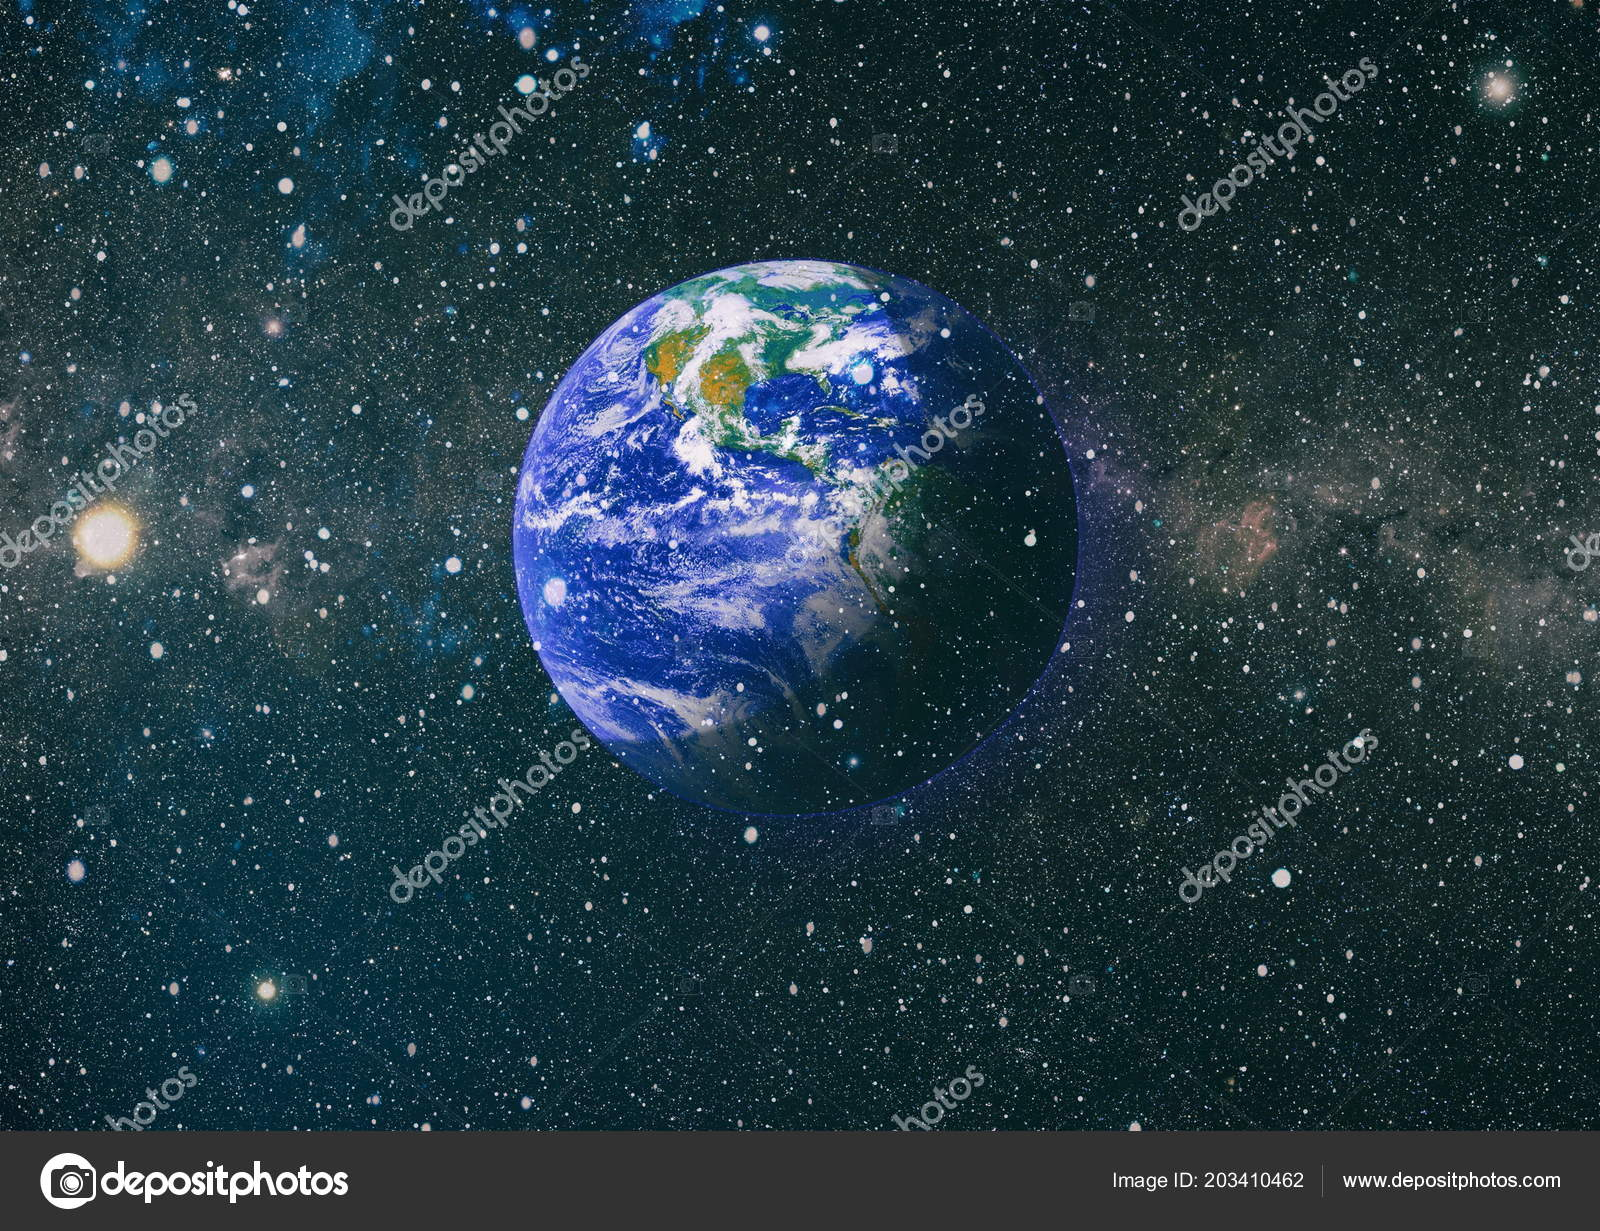 Earth Outer Space Collage Abstract Wallpaper Our Home Elements Image